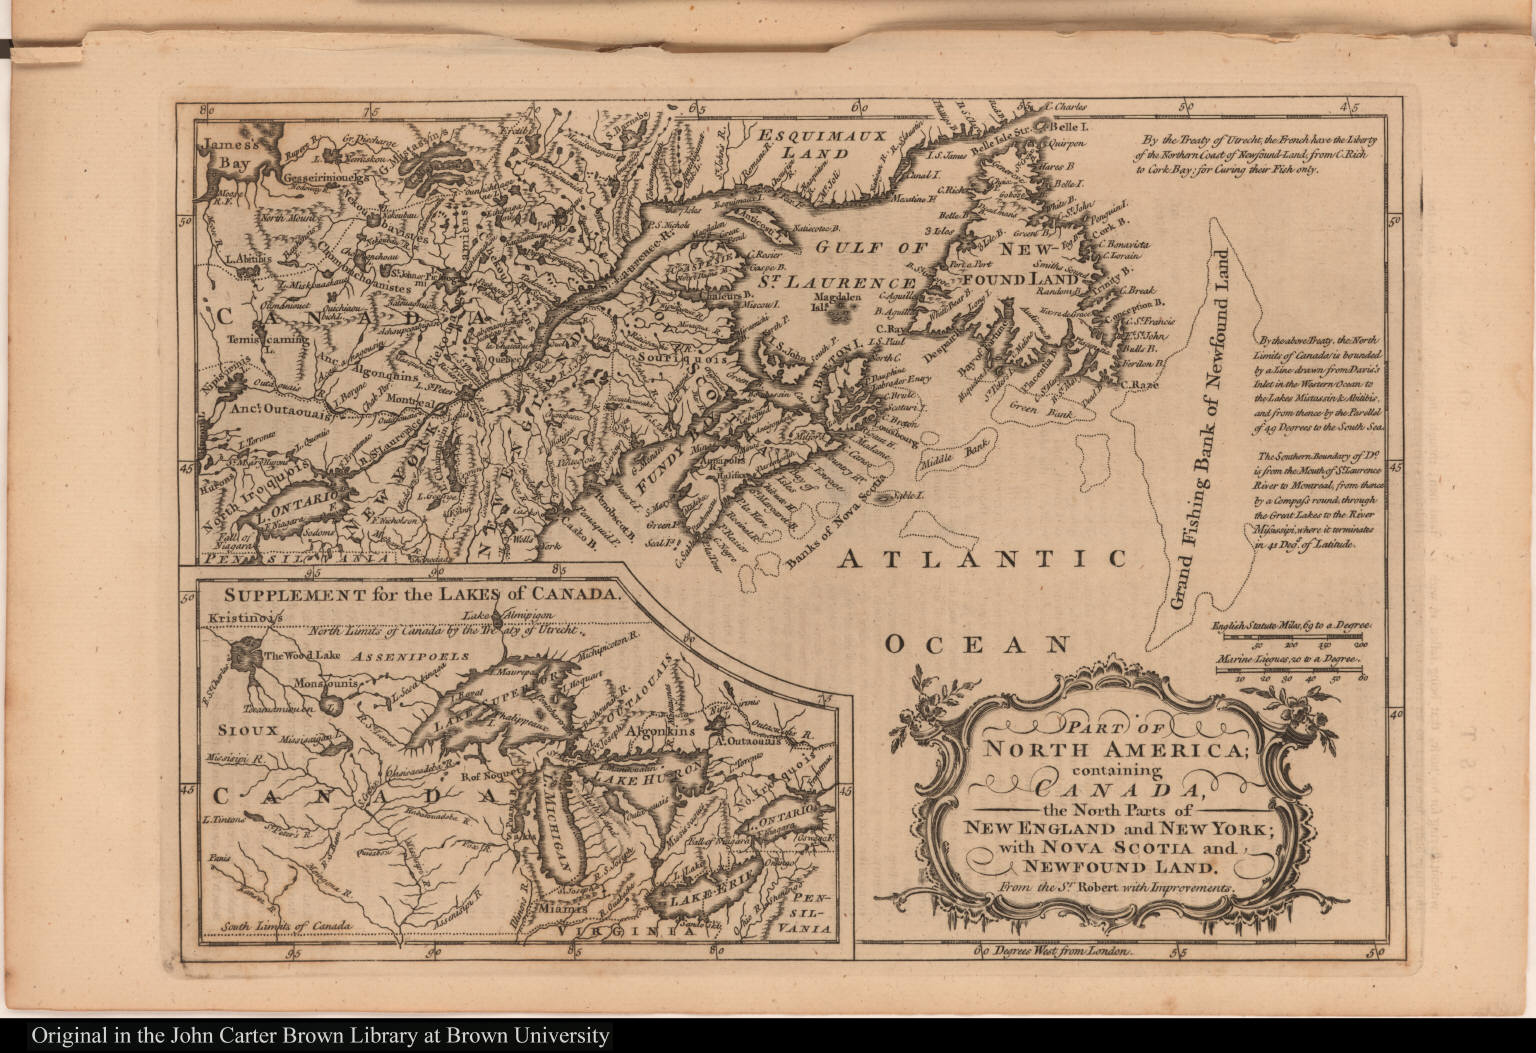 Part of North America; containing Canada, the North Parts of New England and New York;